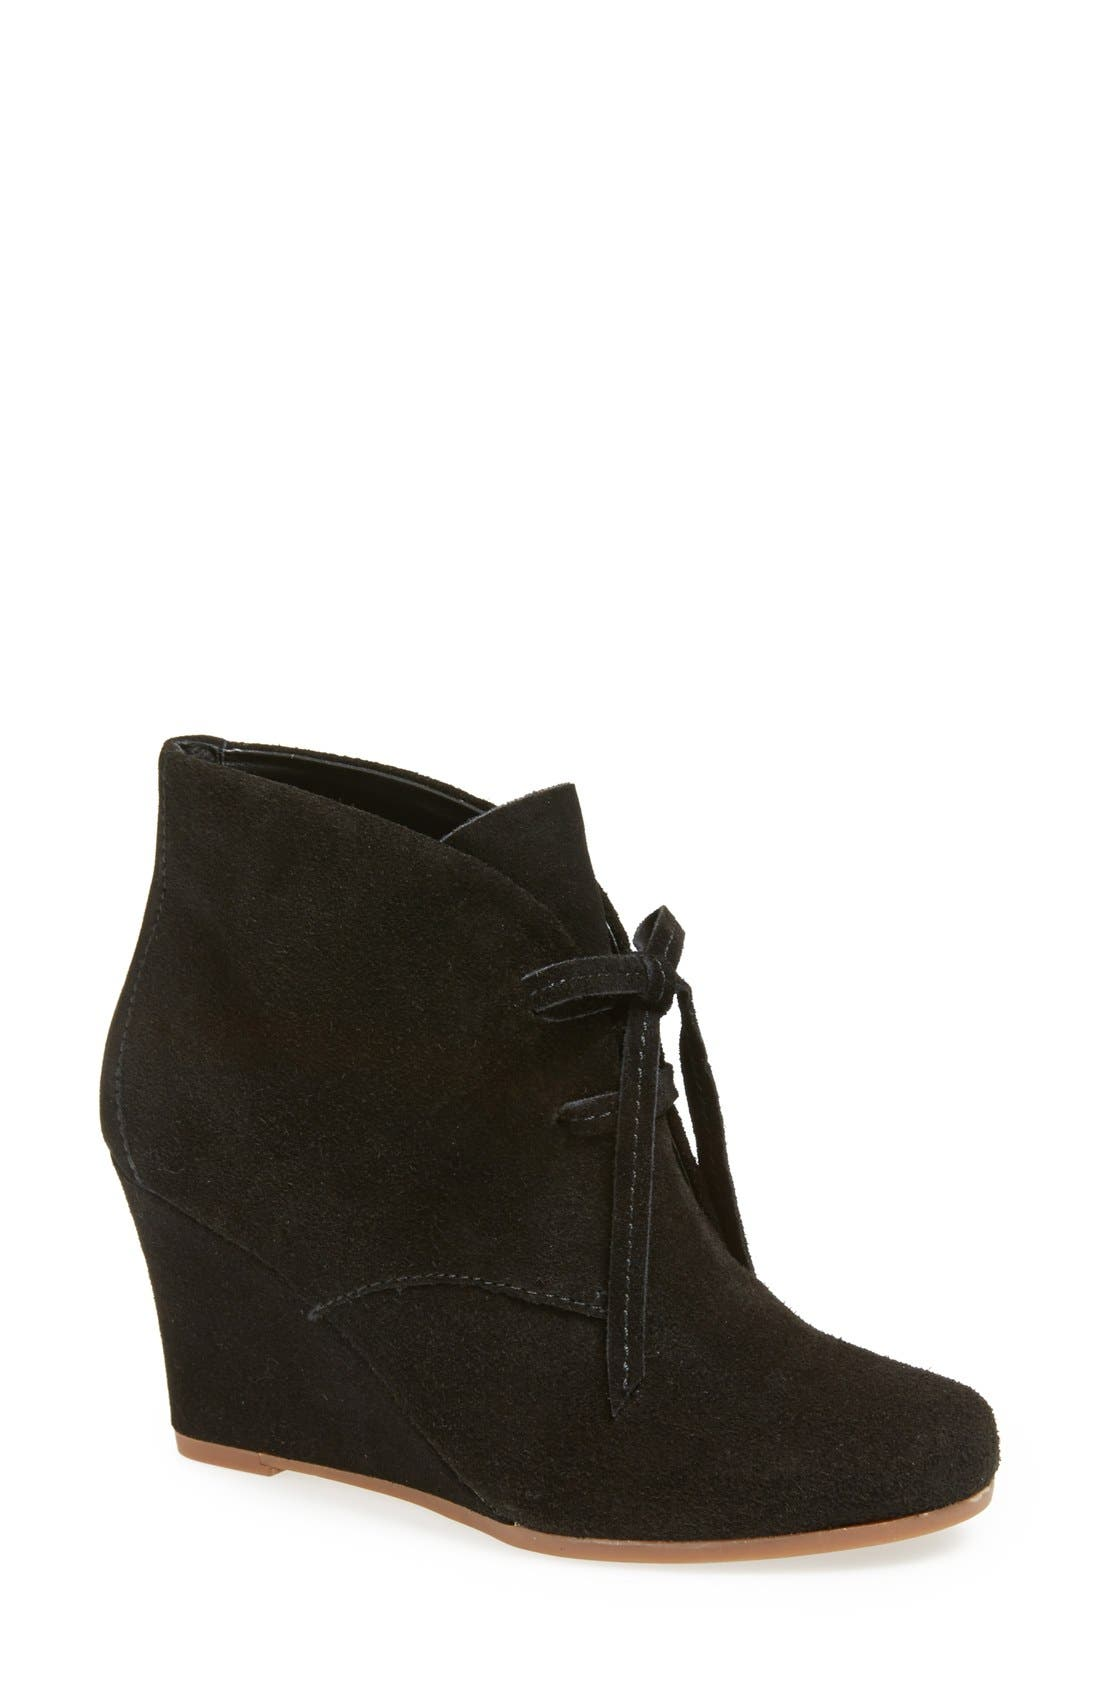 Main Image - DV by Dolce Vita 'Pellie' Bootie (Women)